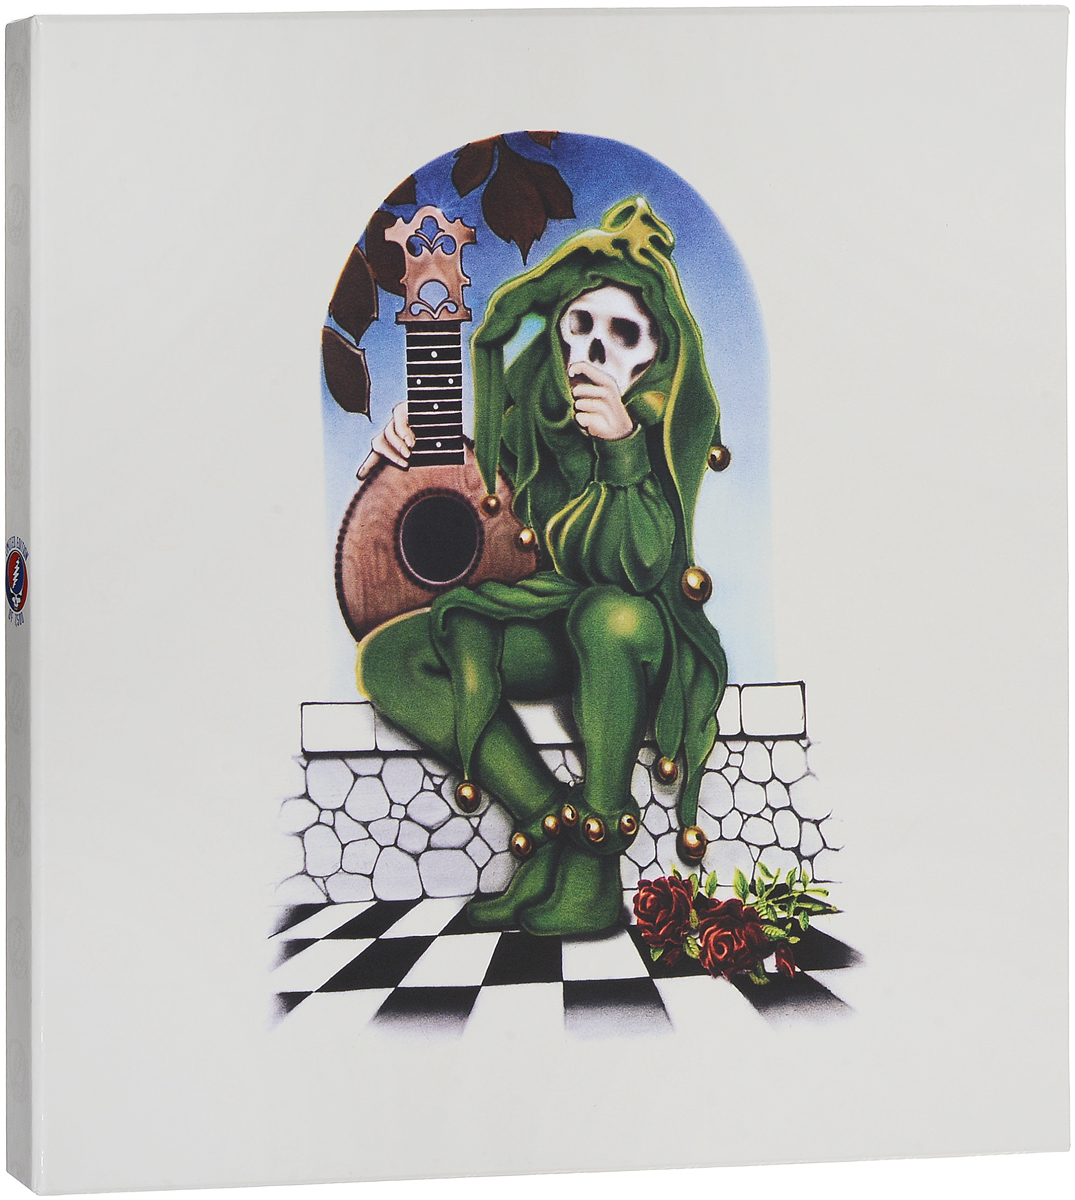 The Grateful Dead Grateful Dead. Grateful Dead Records Collection (5 LP) seun odumbo a grateful heart